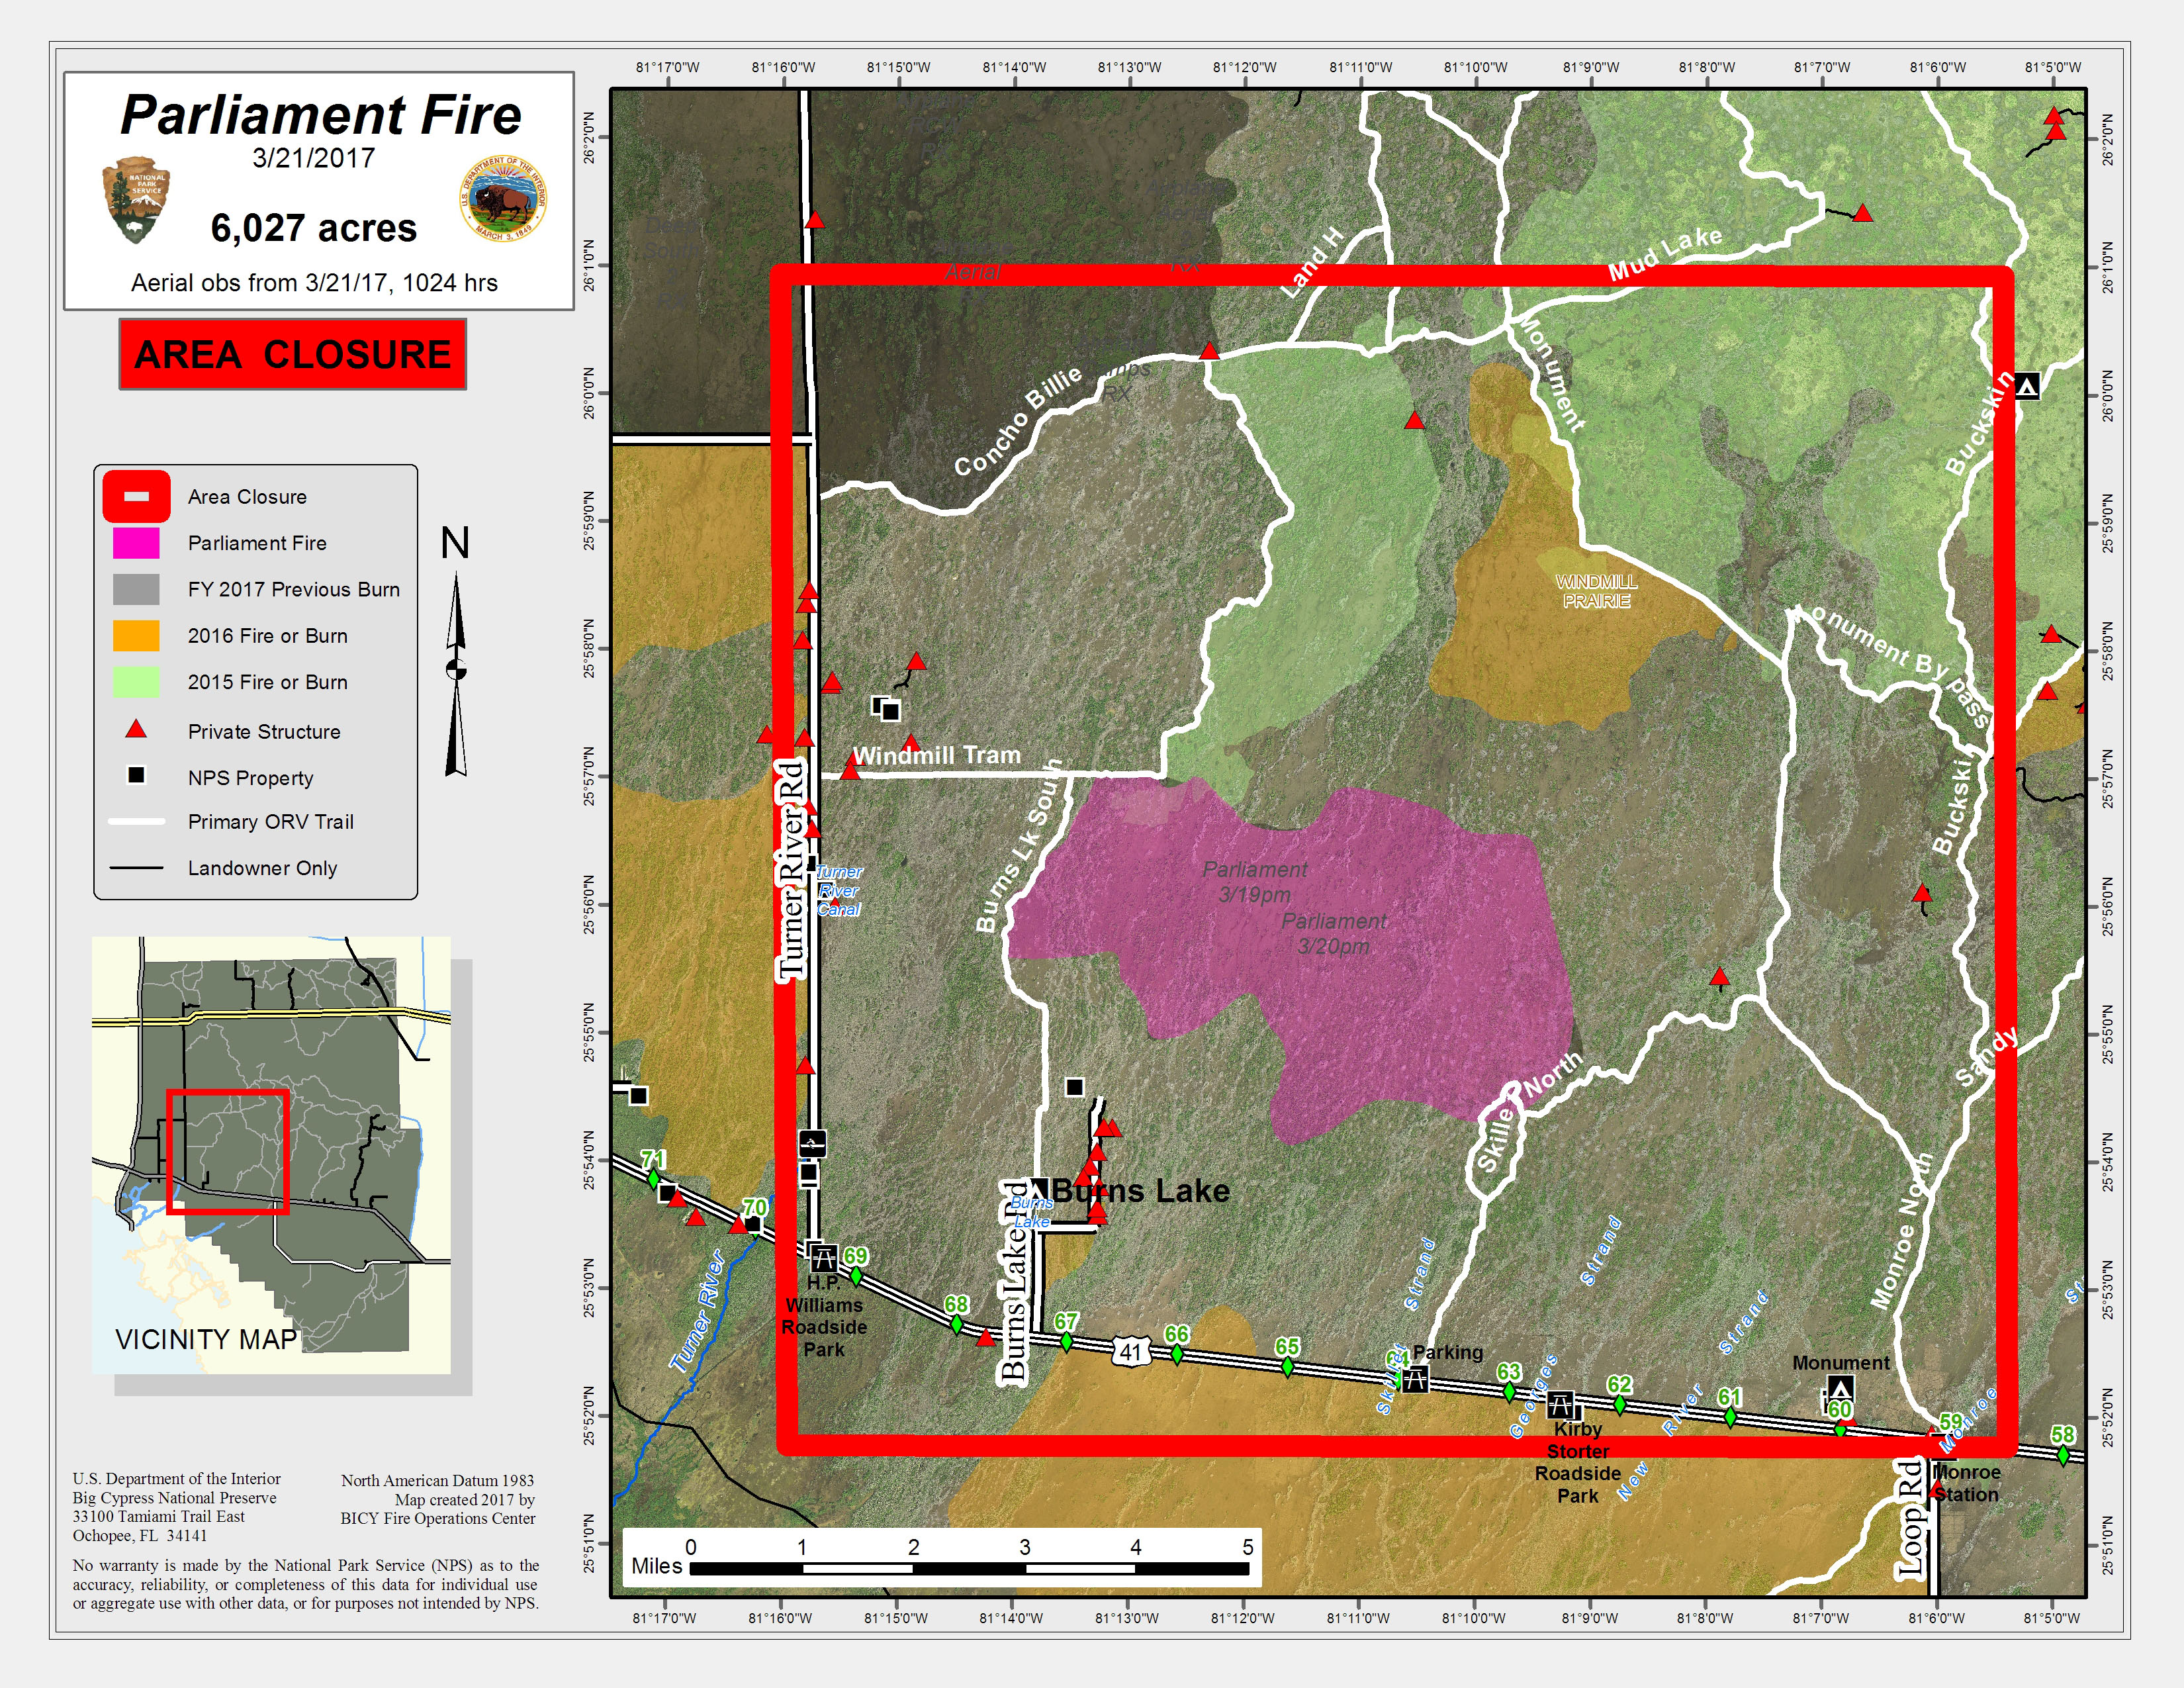 Parliament Fire Area Closure II